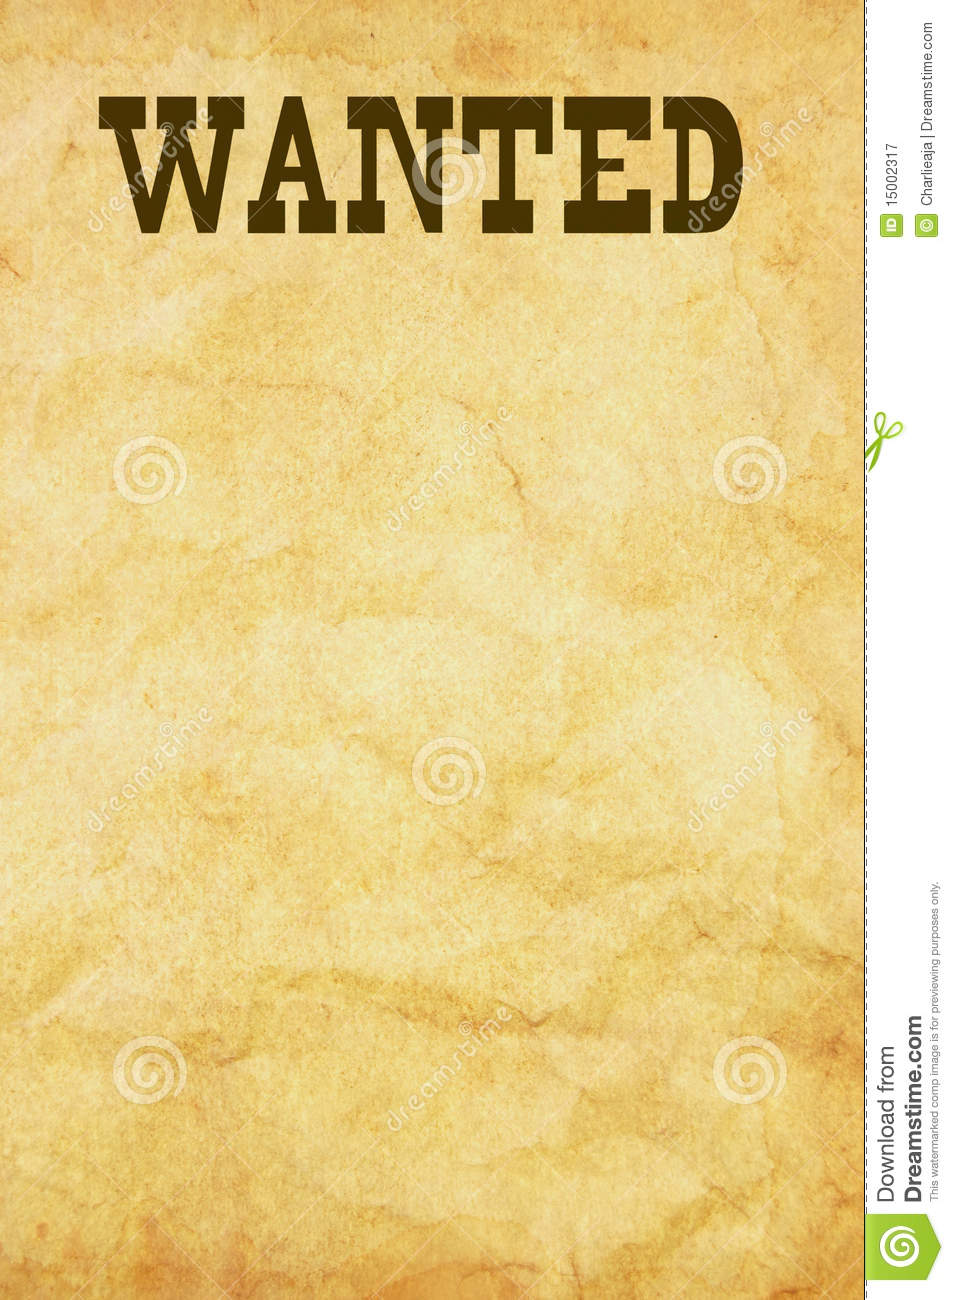 Wanted poster stock illustration. Illustration of advert - 15002317